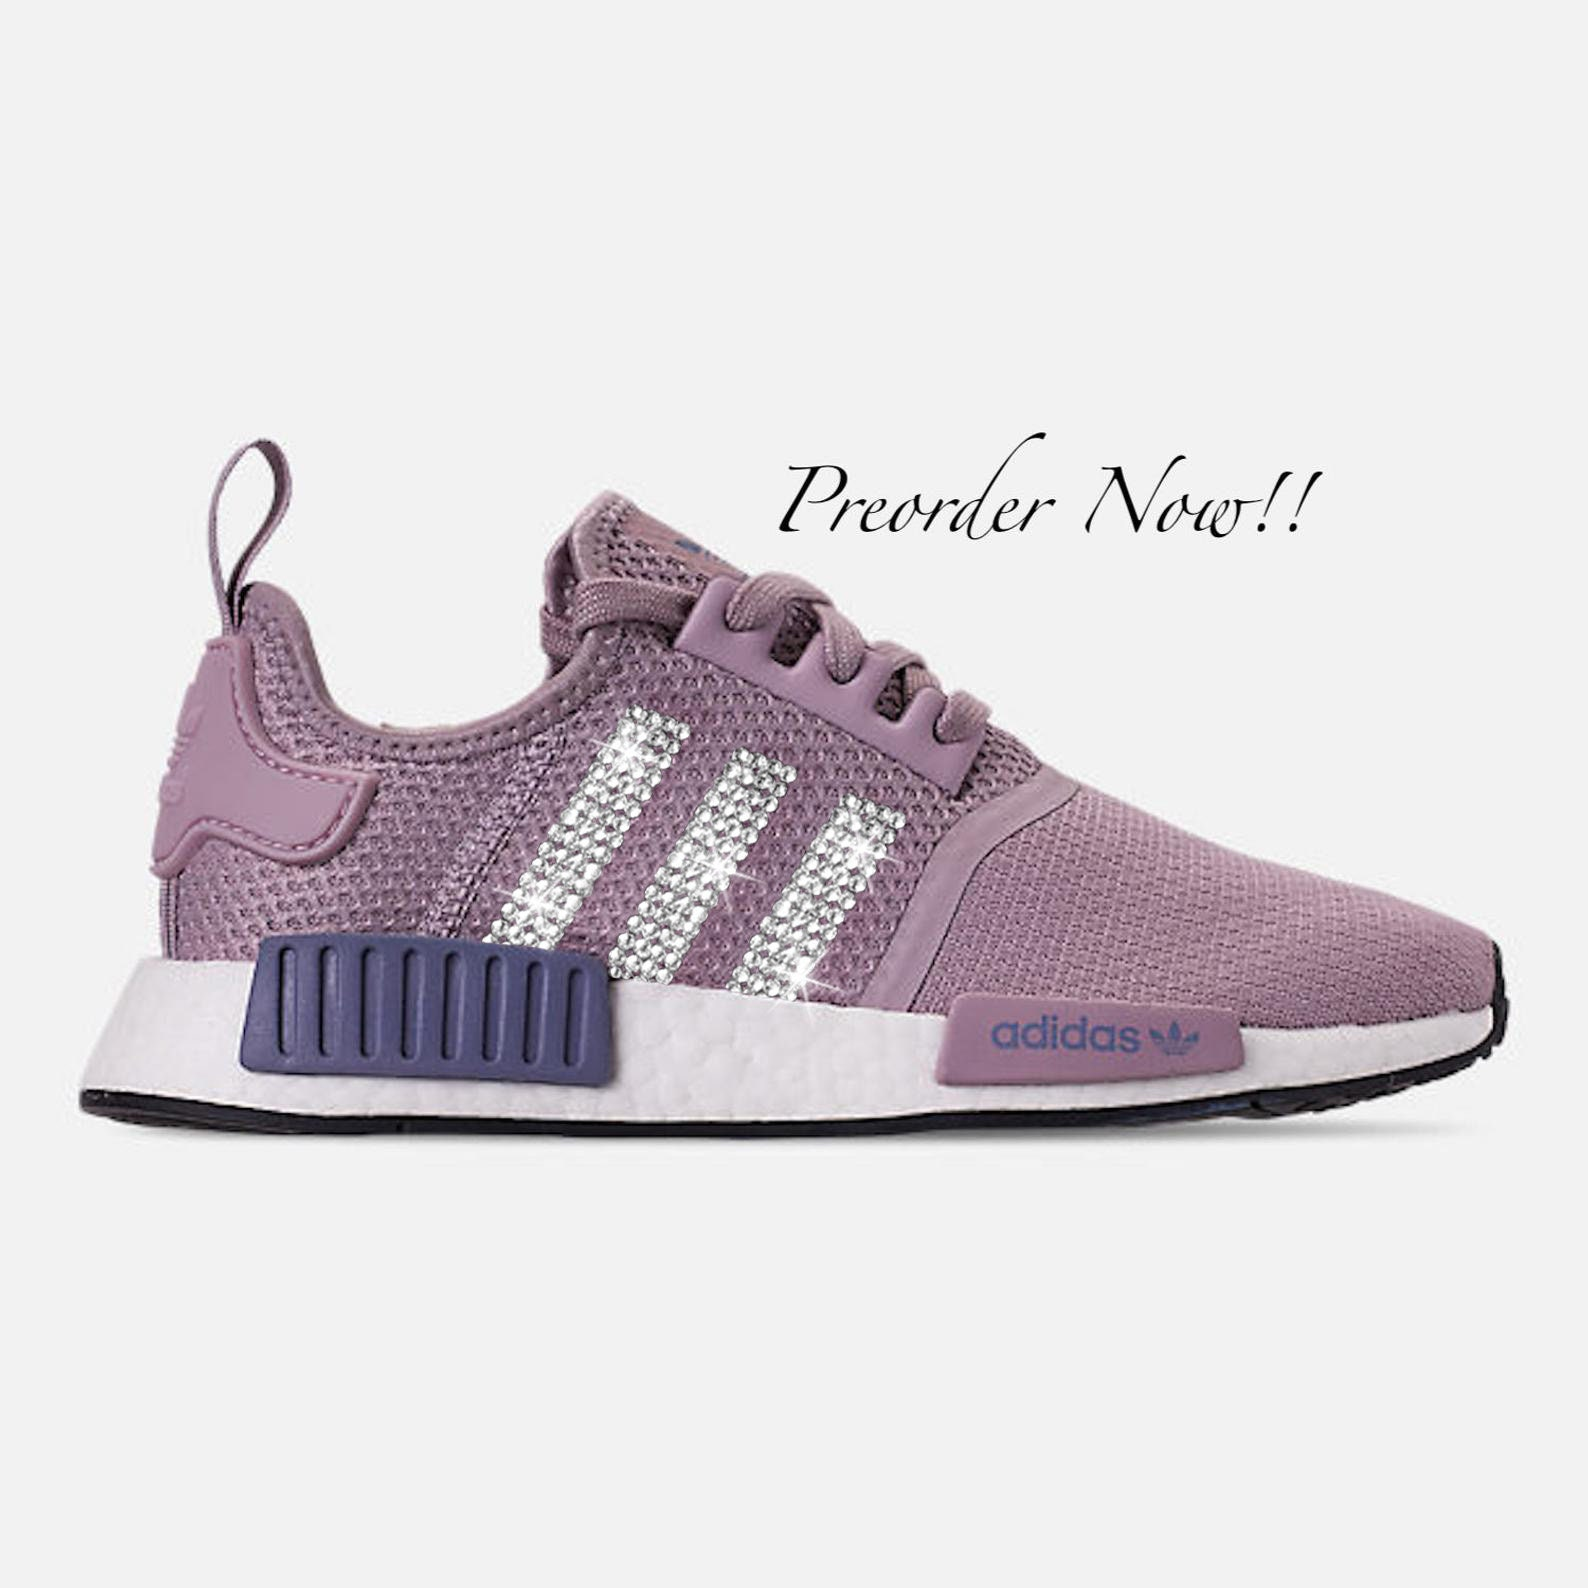 best cheap 2351f a0c69 Swarovski Women's Adidas Originals NMD R1 Purple Sneakers Blinged Out With  Authentic Clear Swarovski Crystals Custom Bling Adidas Shoes